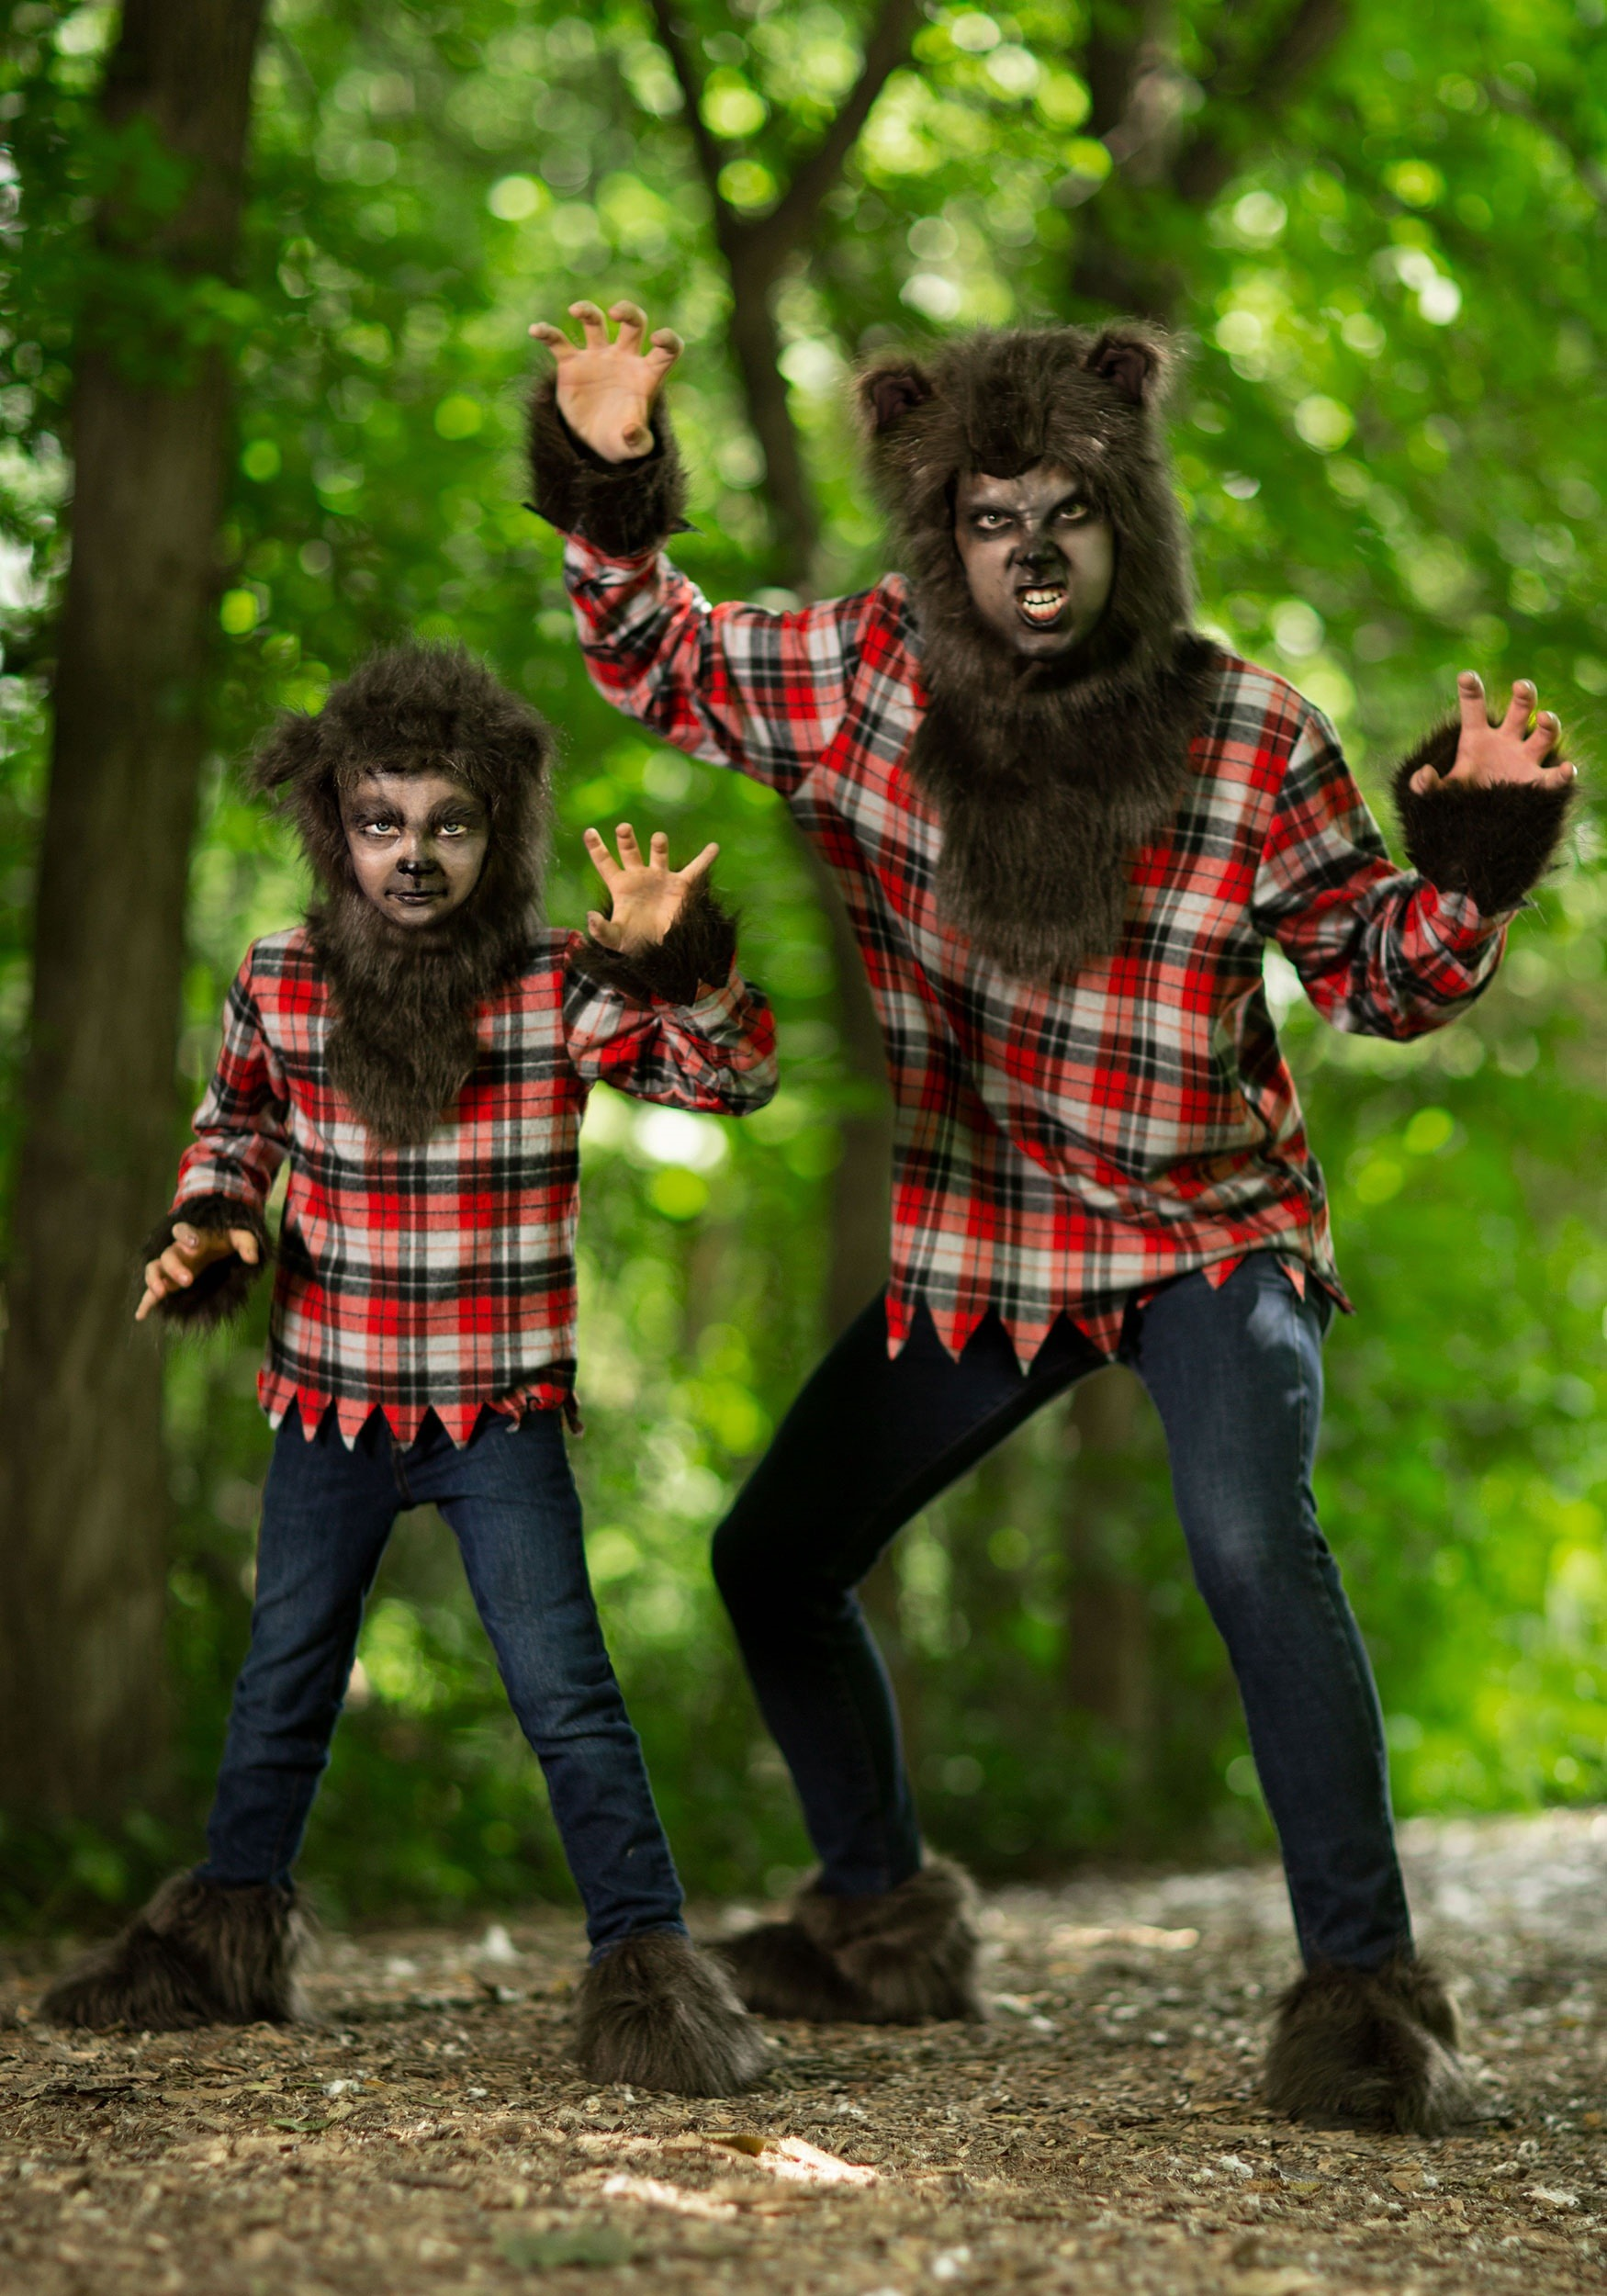 Kids Fierce Werewolf Costume Kids Fierce Werewolf Costume ...  sc 1 st  Halloween Costumes : kids fierce werewolf costume  - Germanpascual.Com